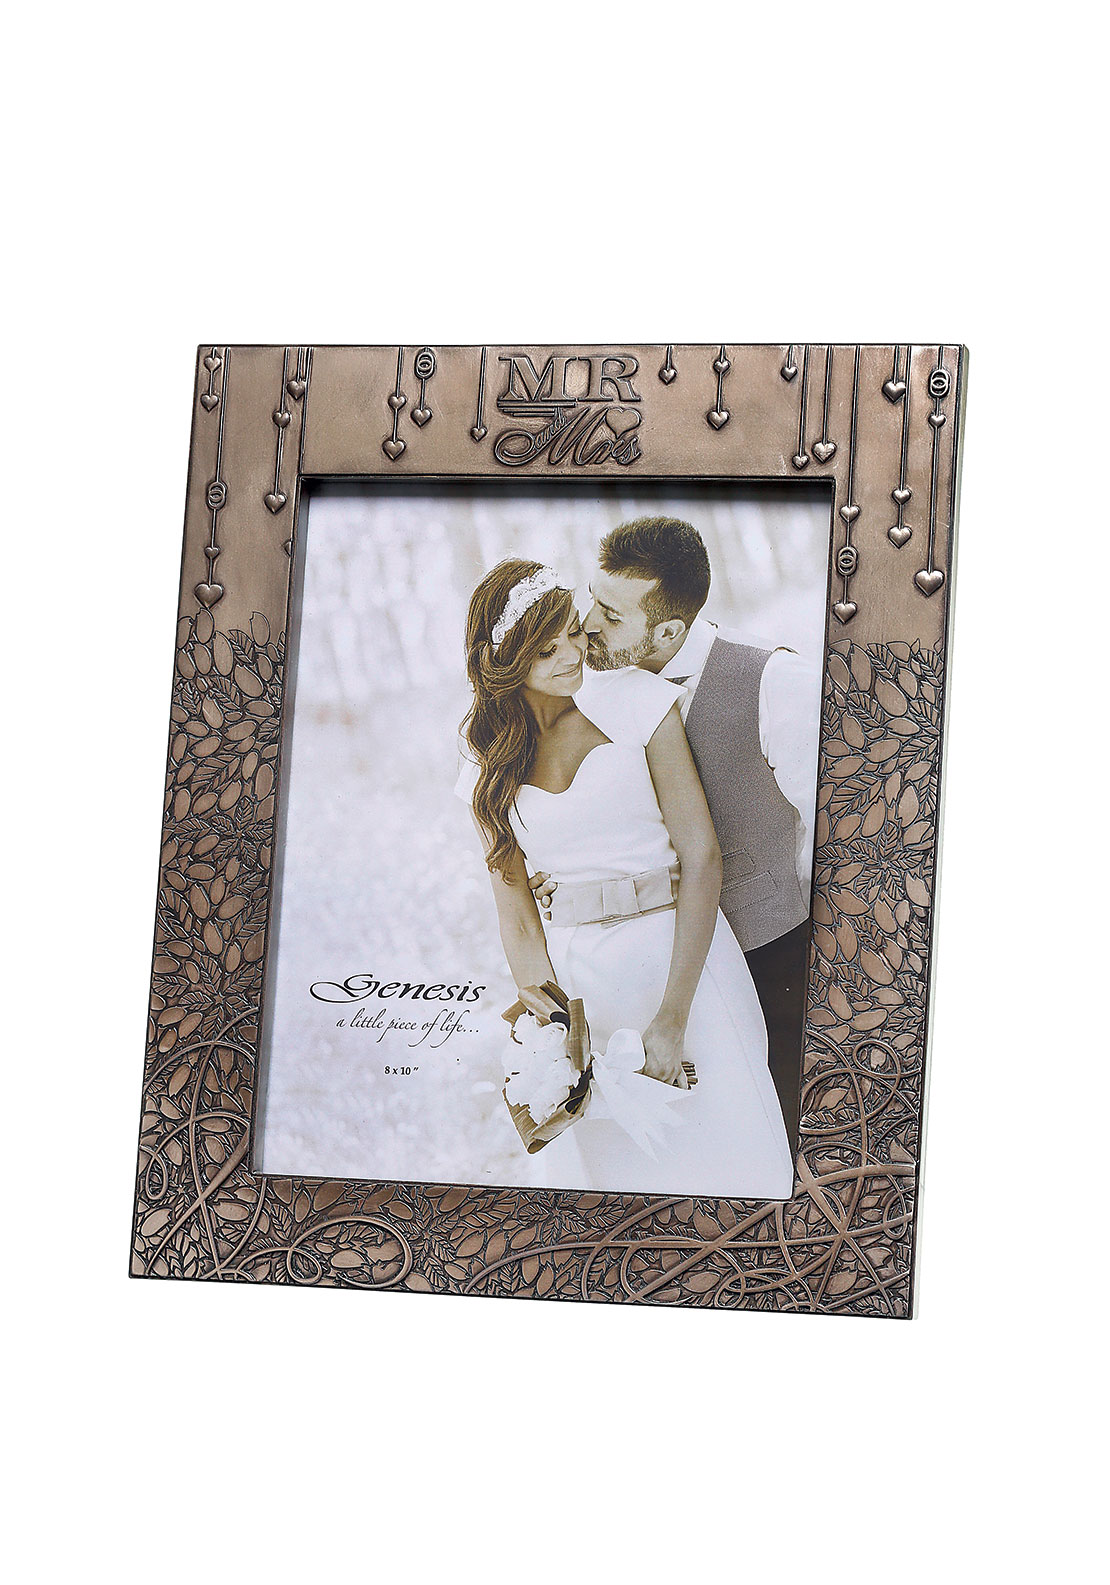 genesis mr mrs photo frame 8 x 10 - Mr And Mrs Picture Frame